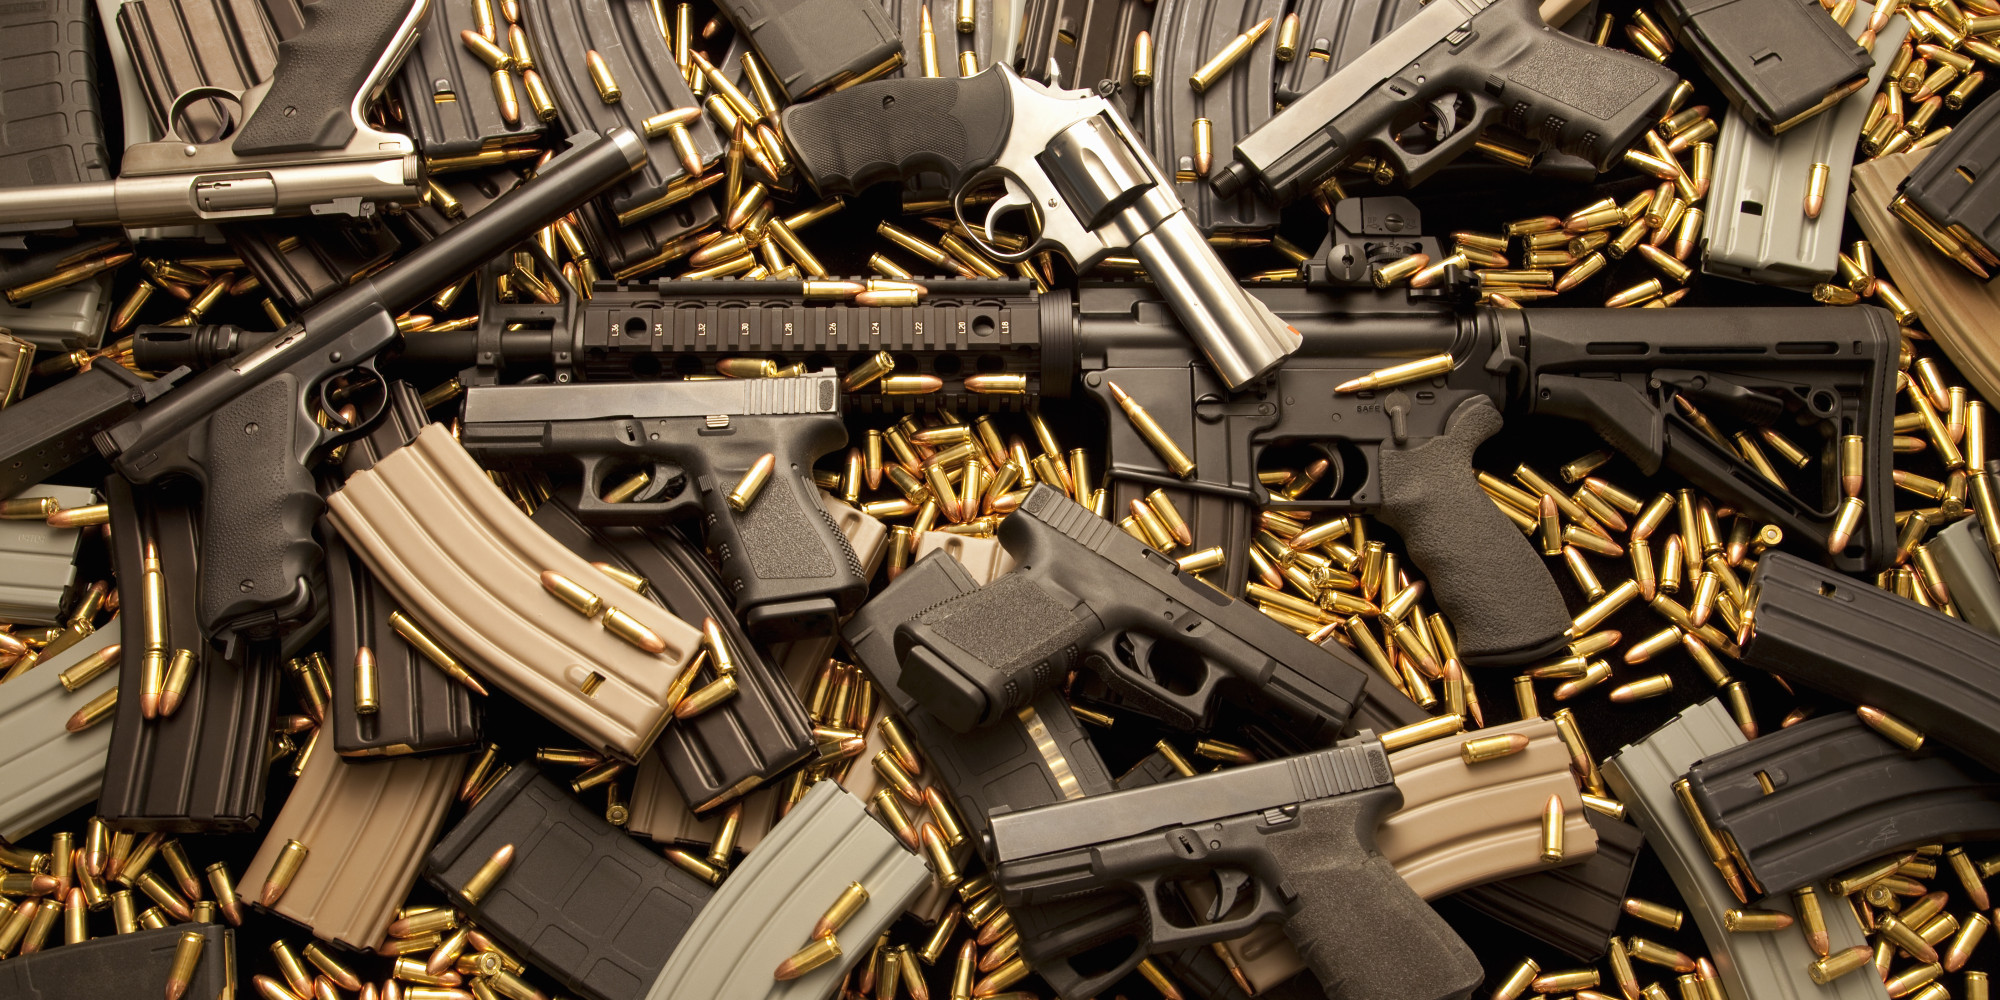 guns, pistols, rifle, revolvers, and ammunition